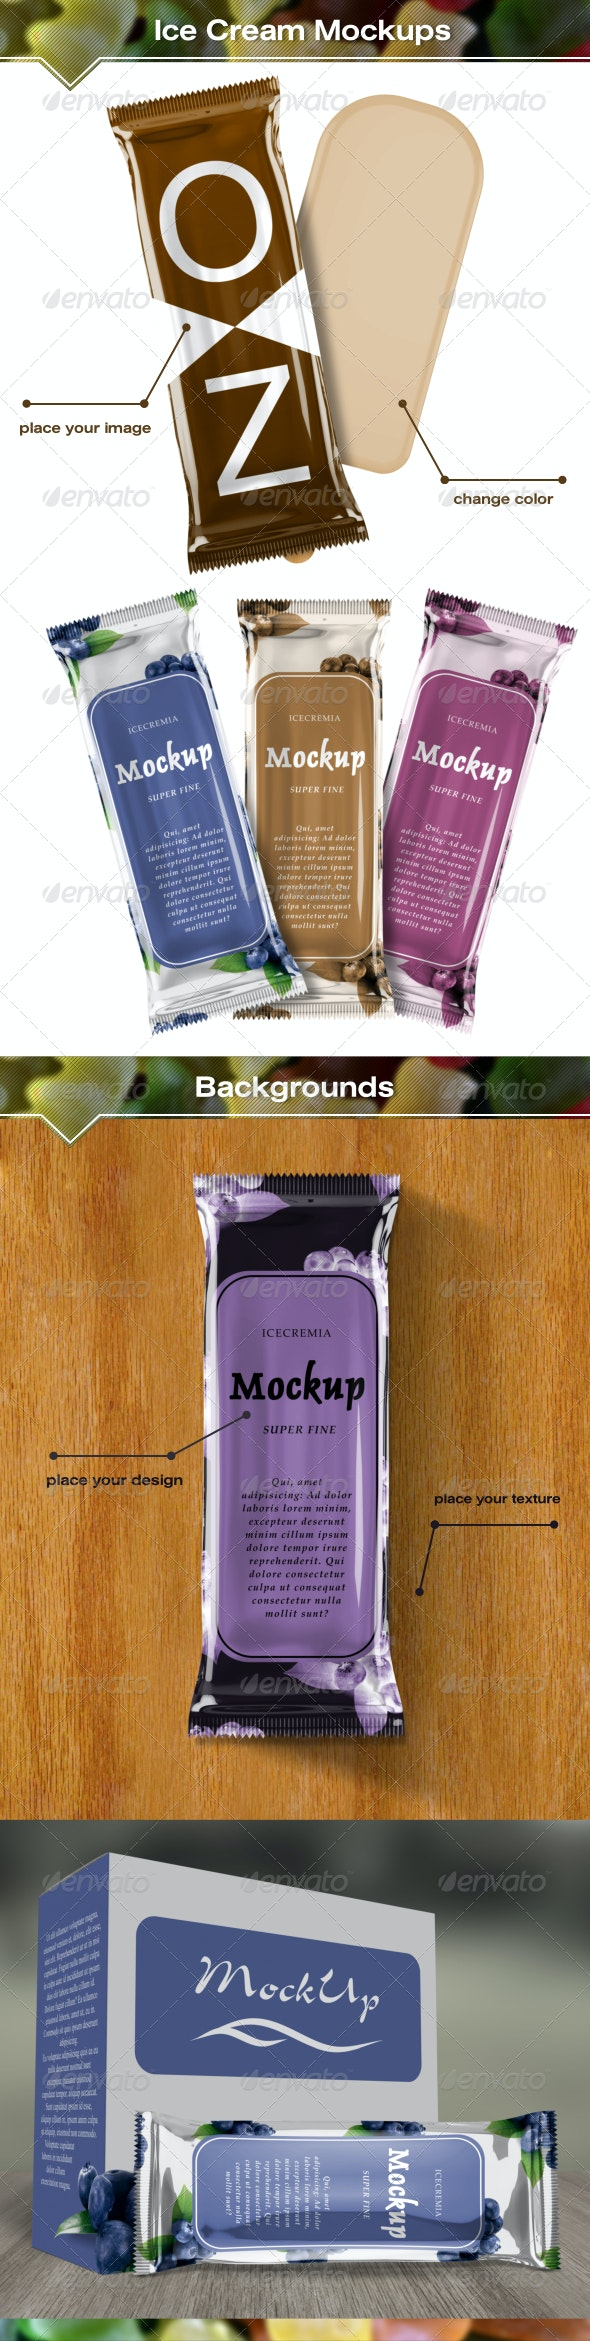 Ice Cream Package Mockups - Food and Drink Packaging